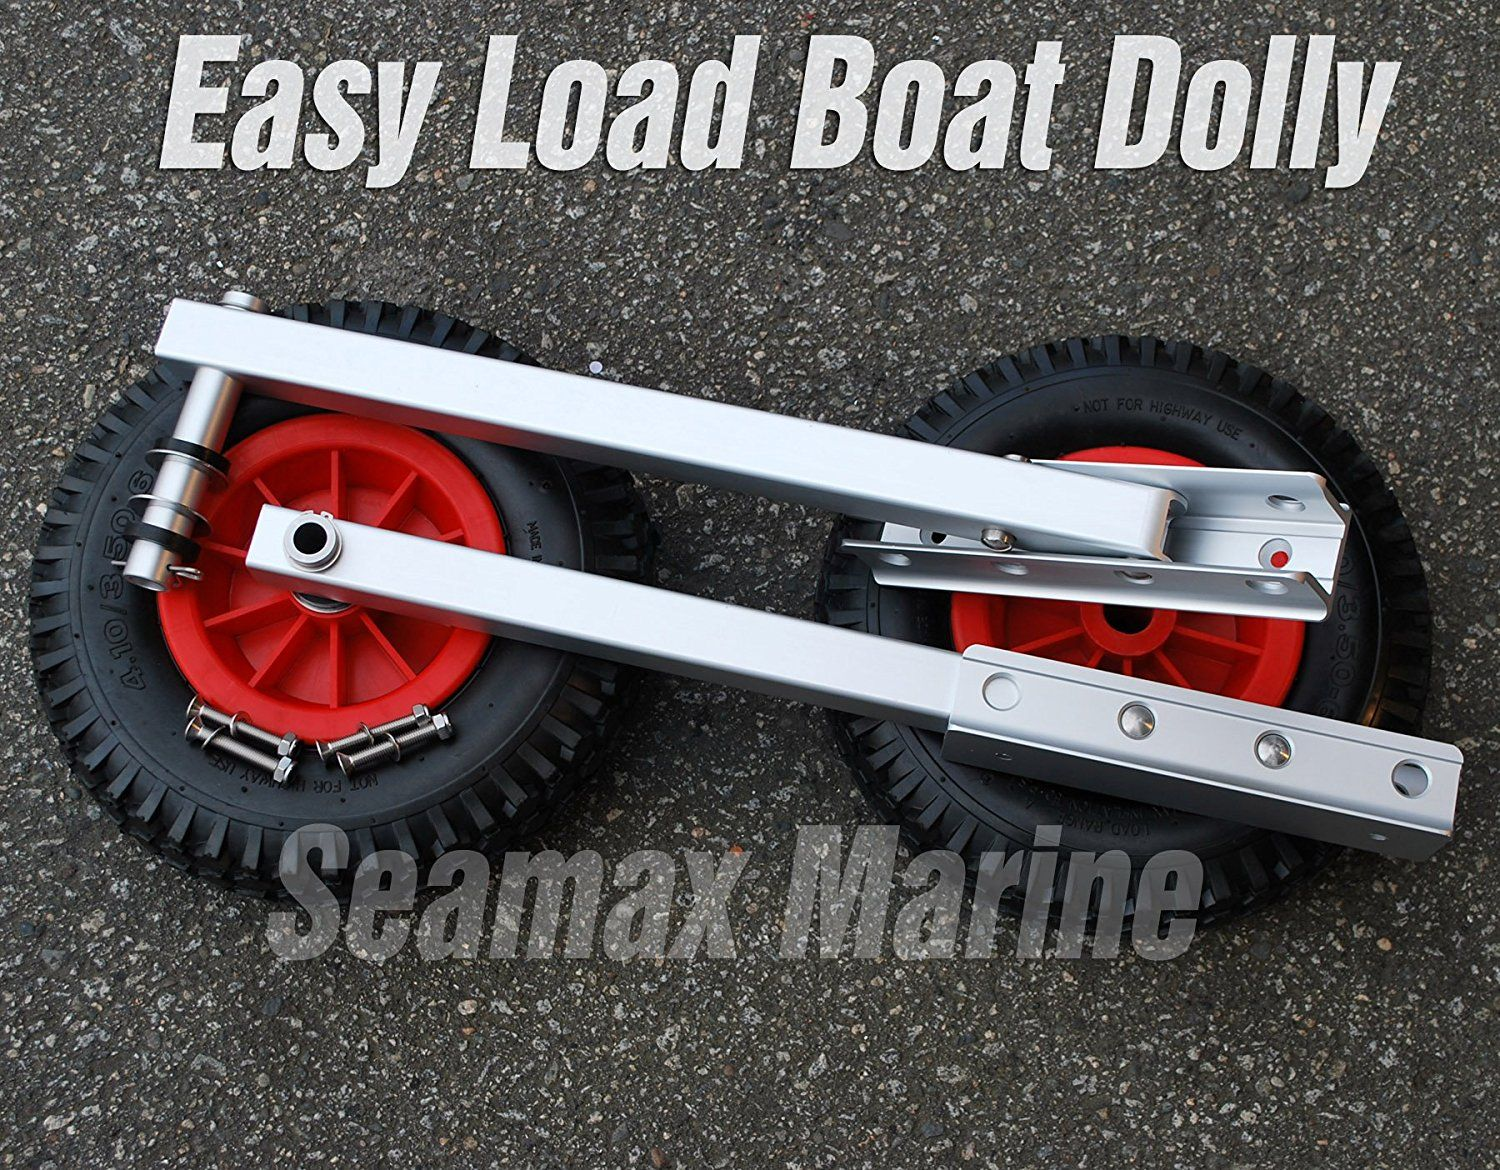 Amazon com : Seamax Easy Load Boat Launching Dolly 12